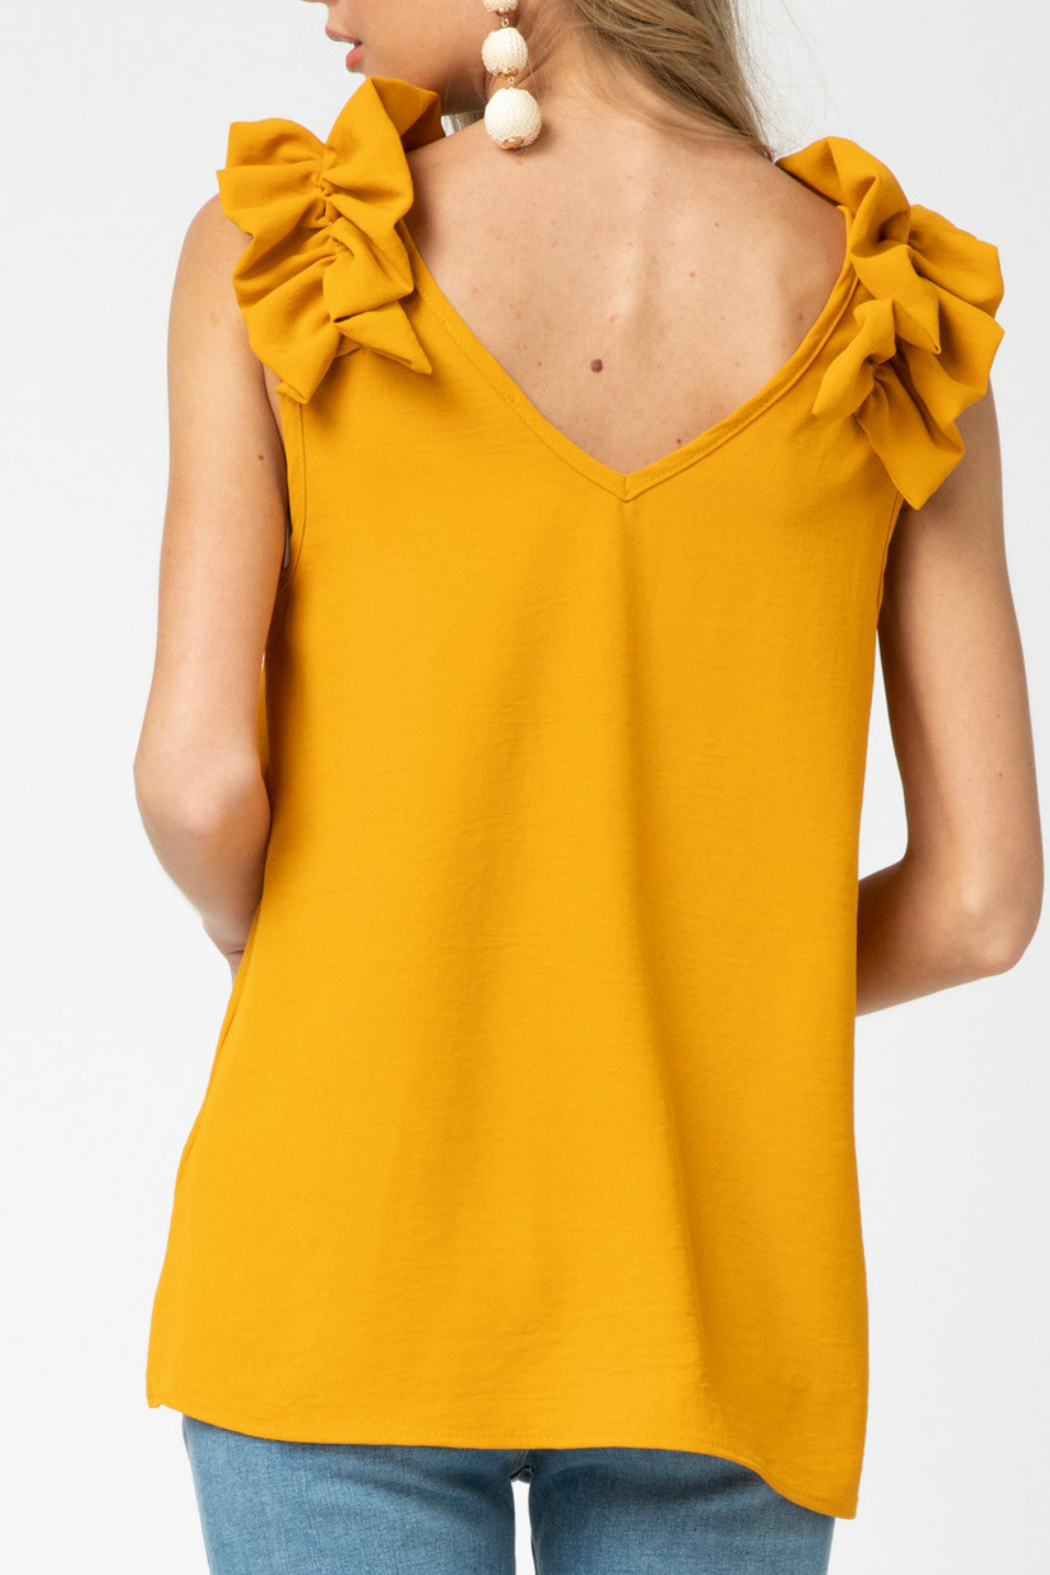 entro  v-neck top featuring ruffle detail - Side Cropped Image